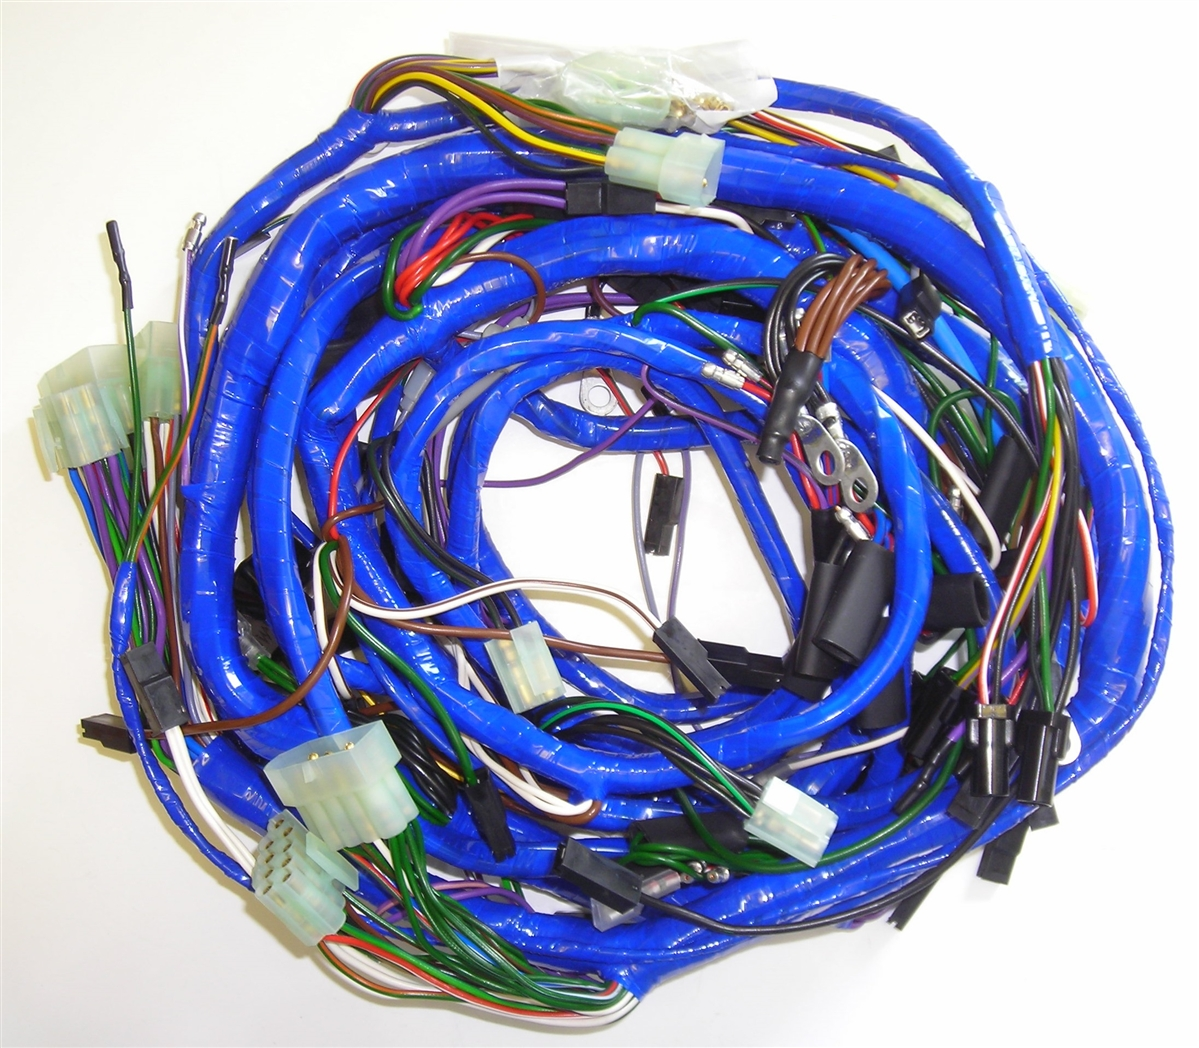 521 2?1368181735 mgb 1979 80 main wiring harness (521) mgb wiring harness at panicattacktreatment.co